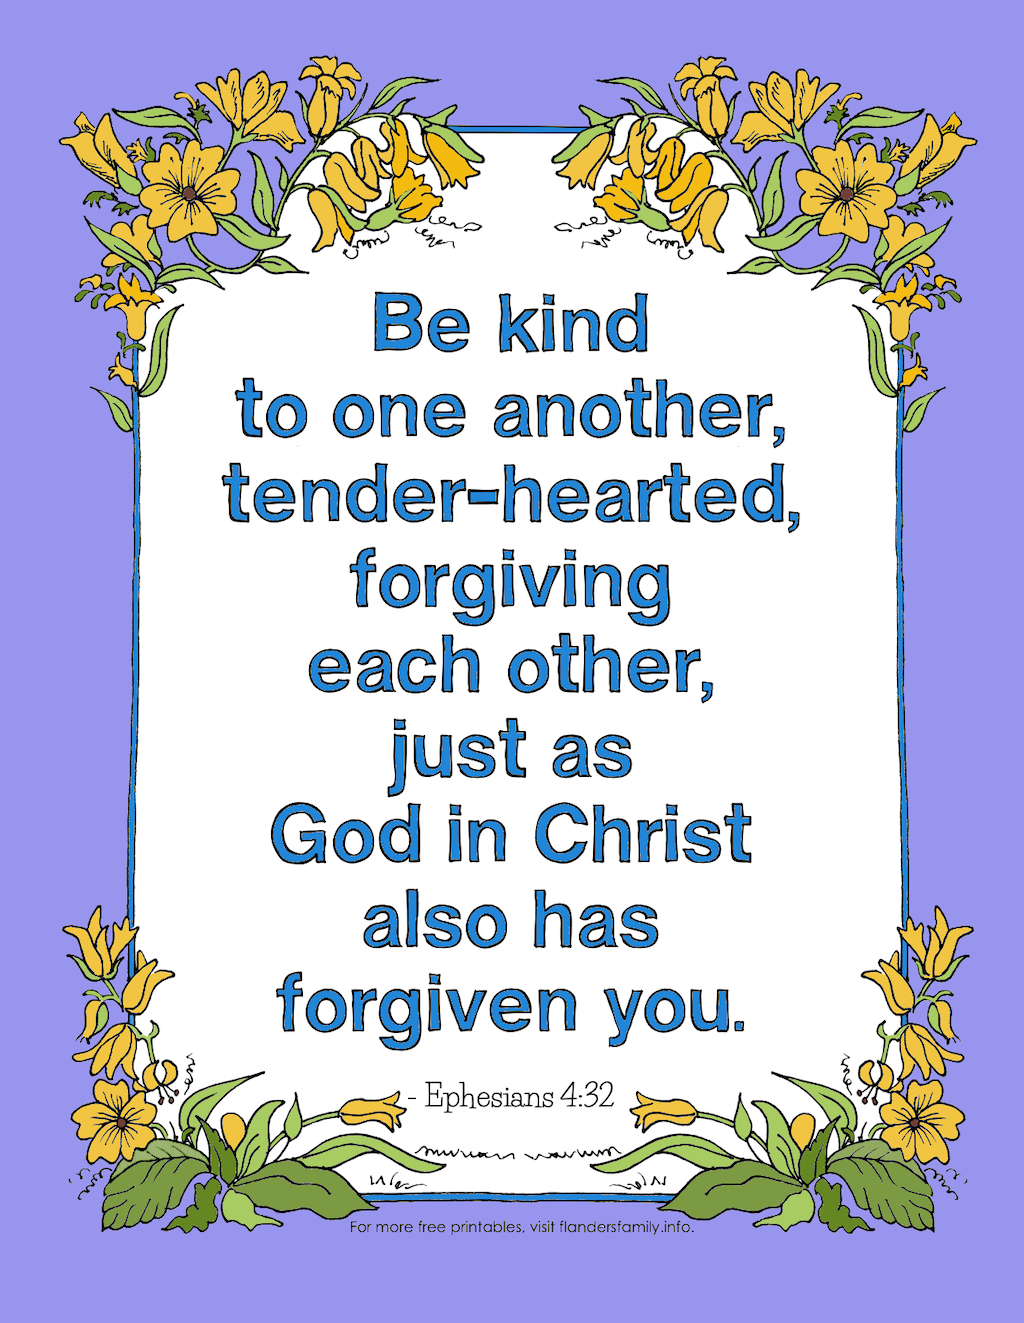 Be kind to one another...